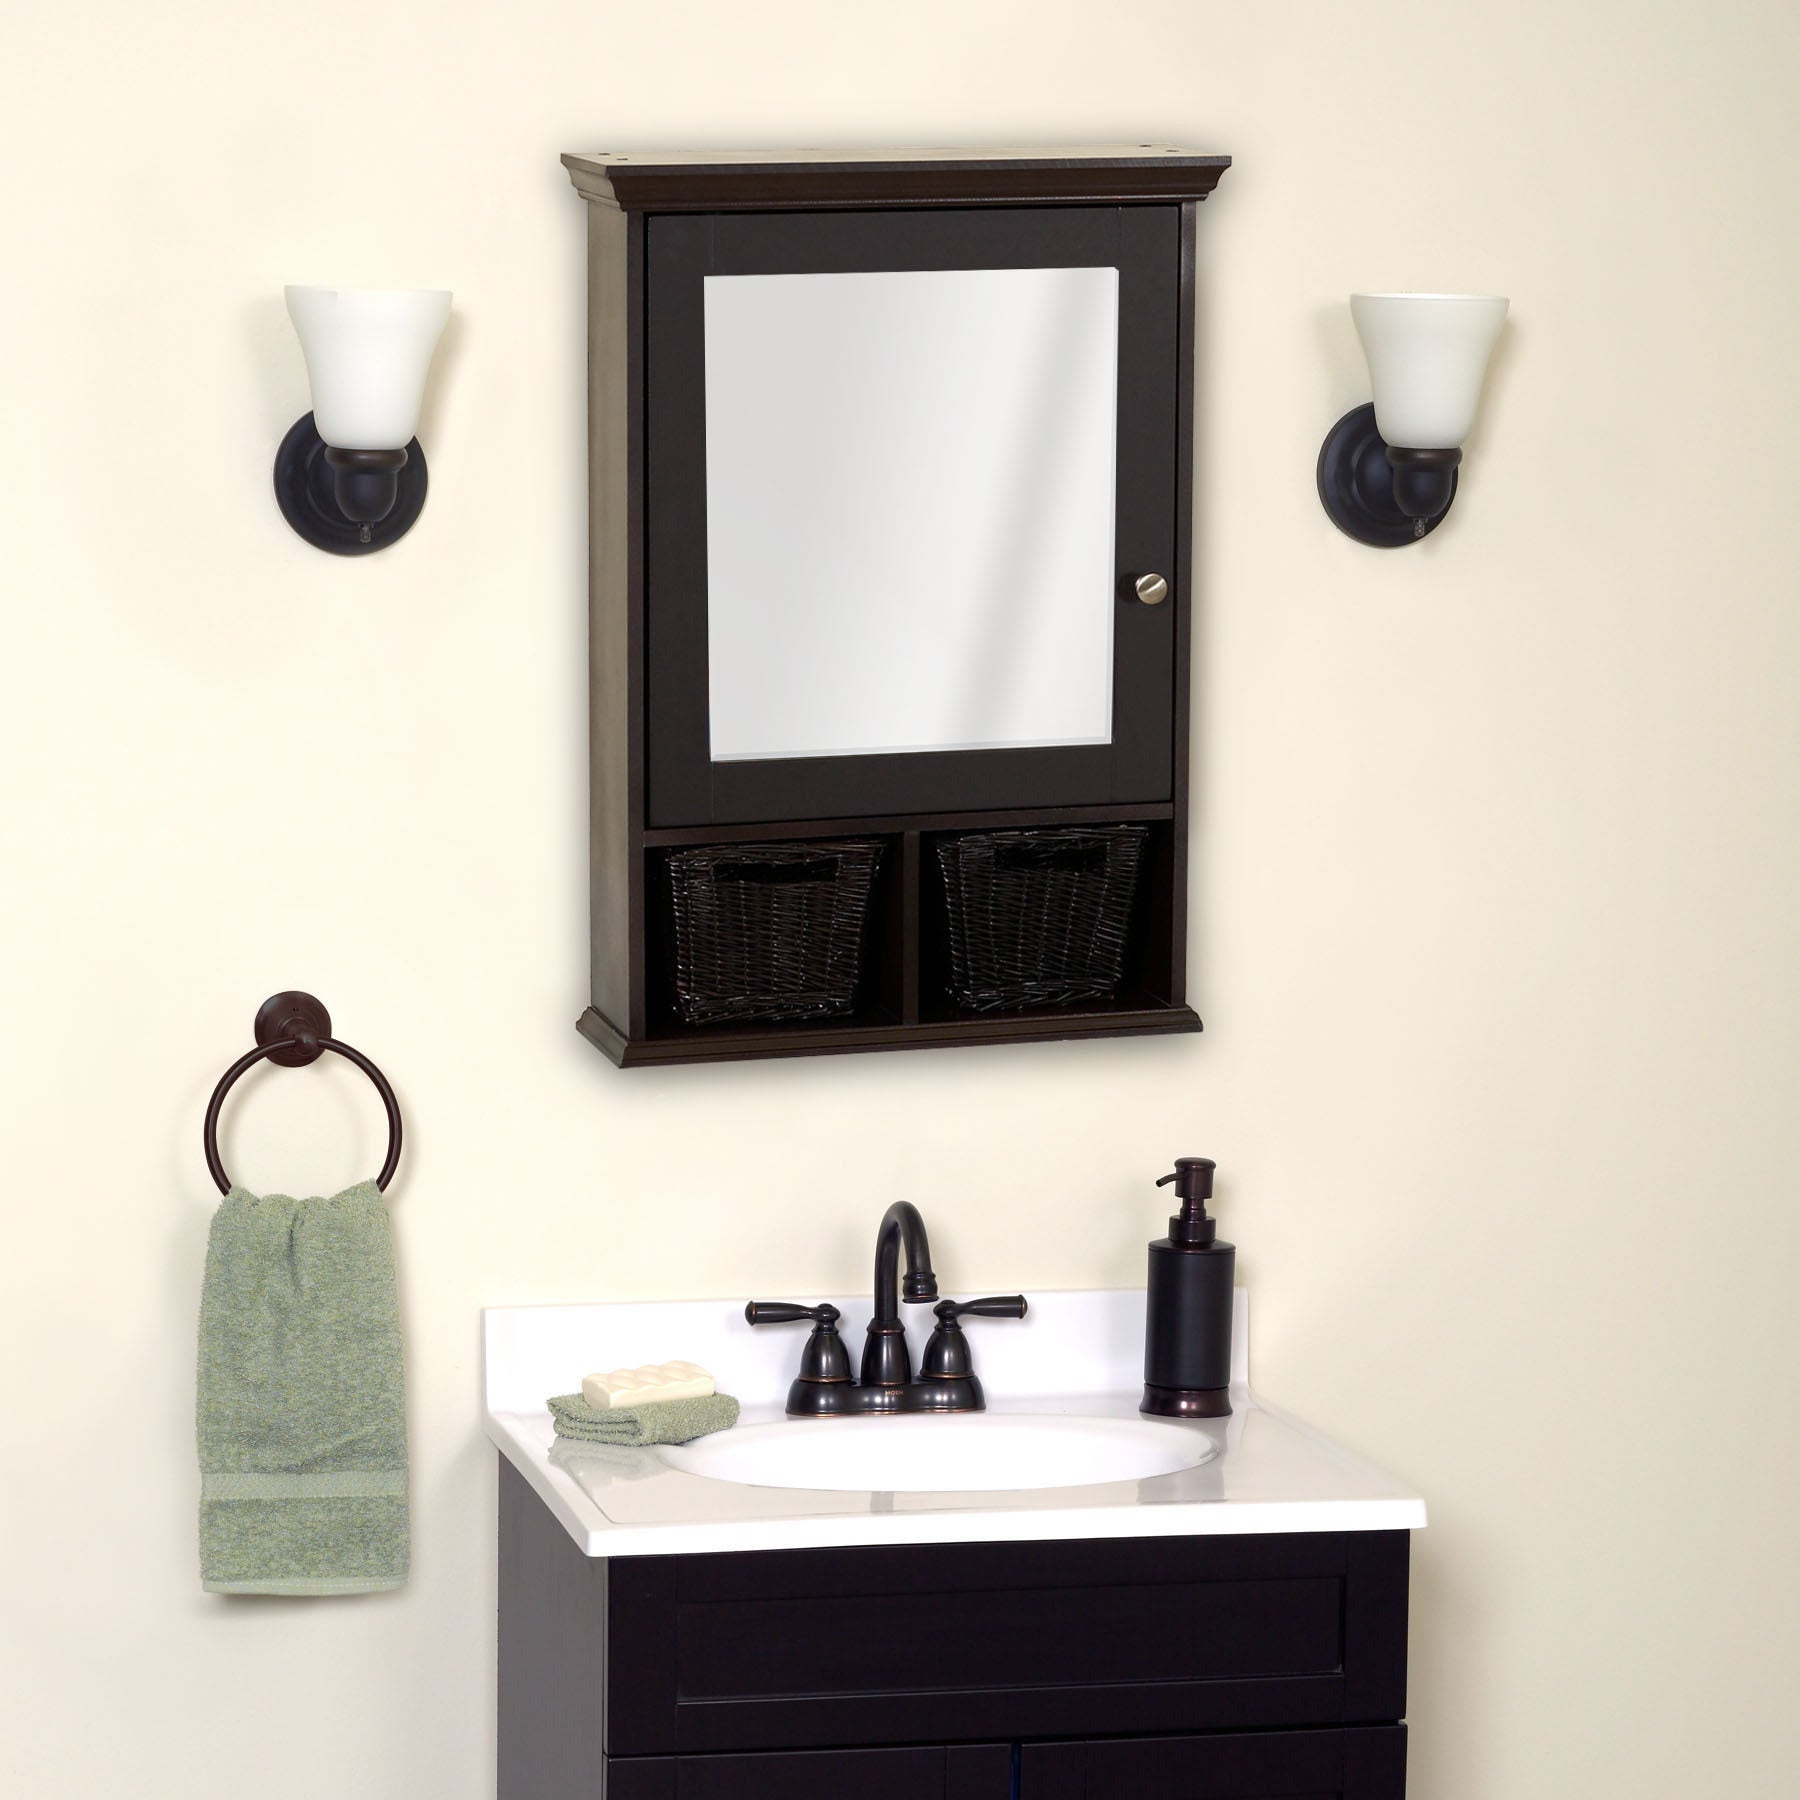 Shop Zenith Espresso Medicine Cabinet With 2 Wicker Baskets   Free Shipping  Today   Overstock.com   9726412